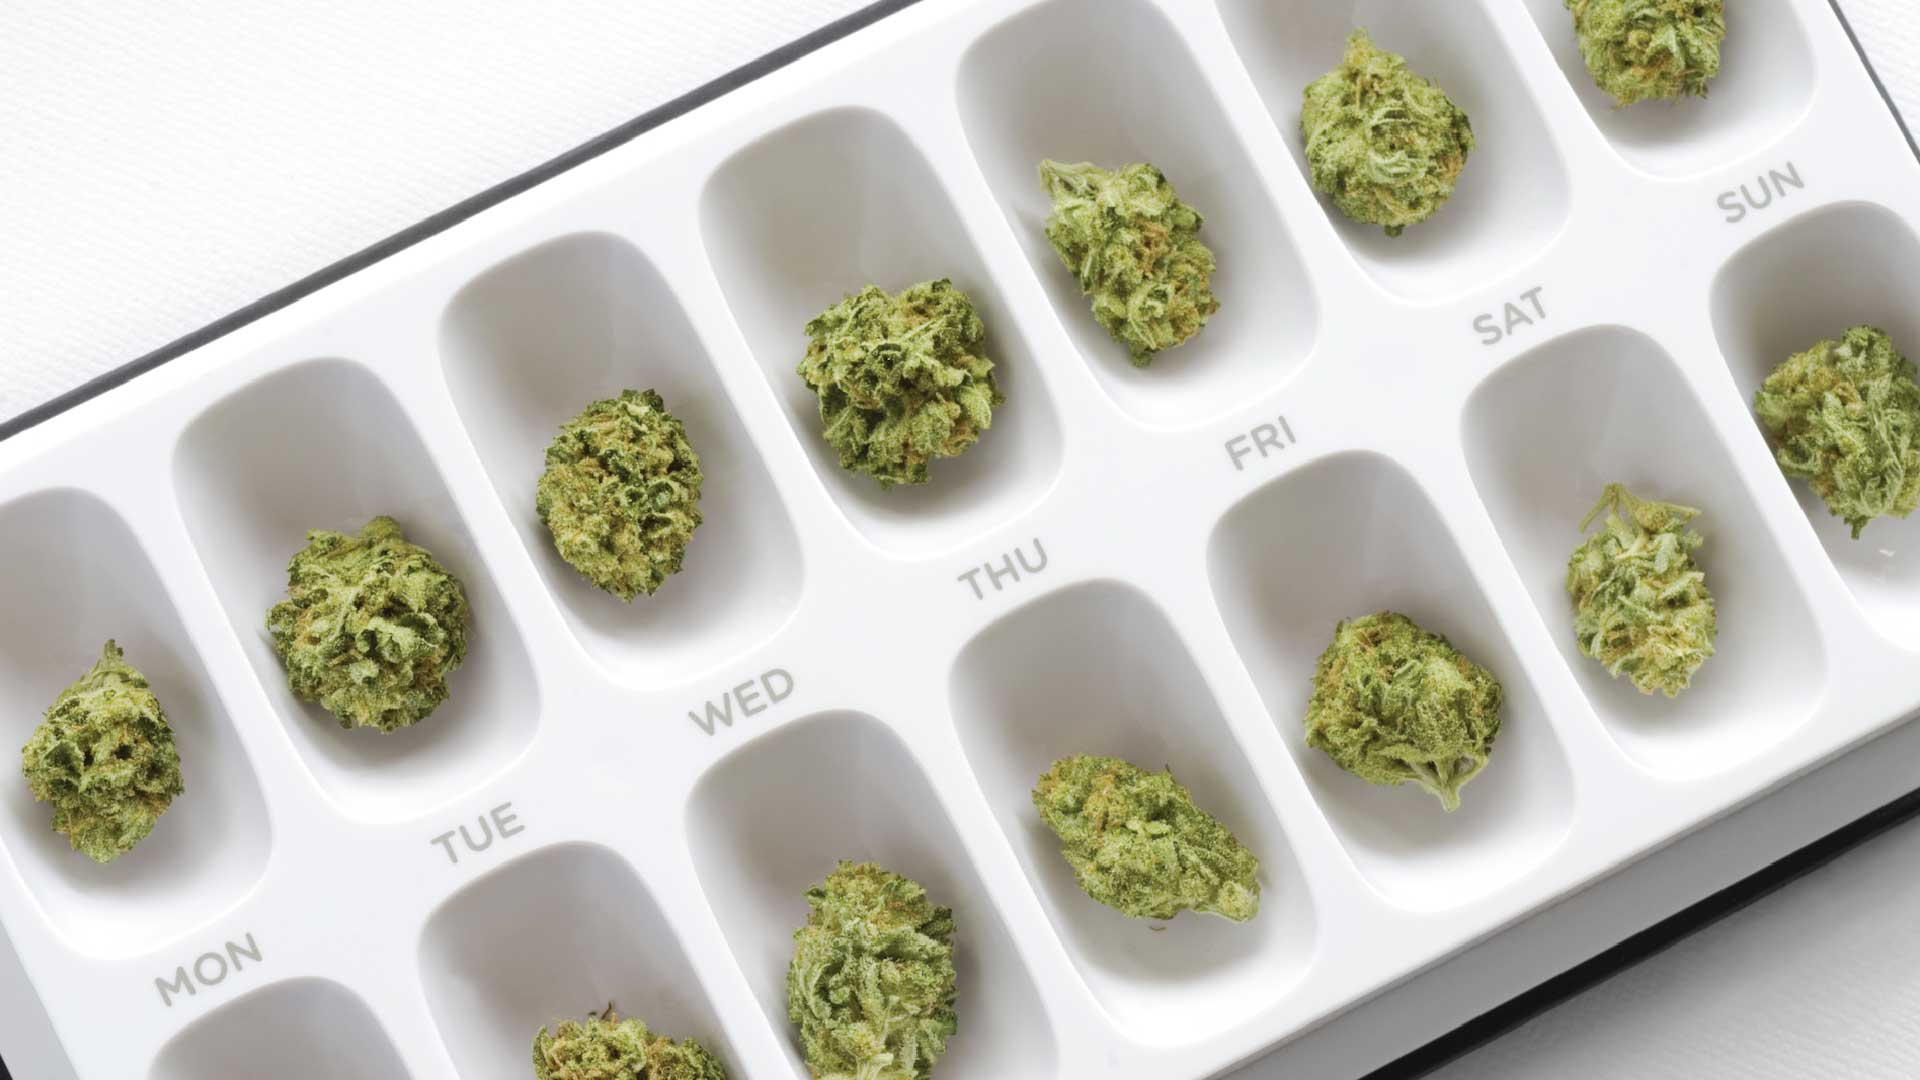 Microdosing gets you the health without the high